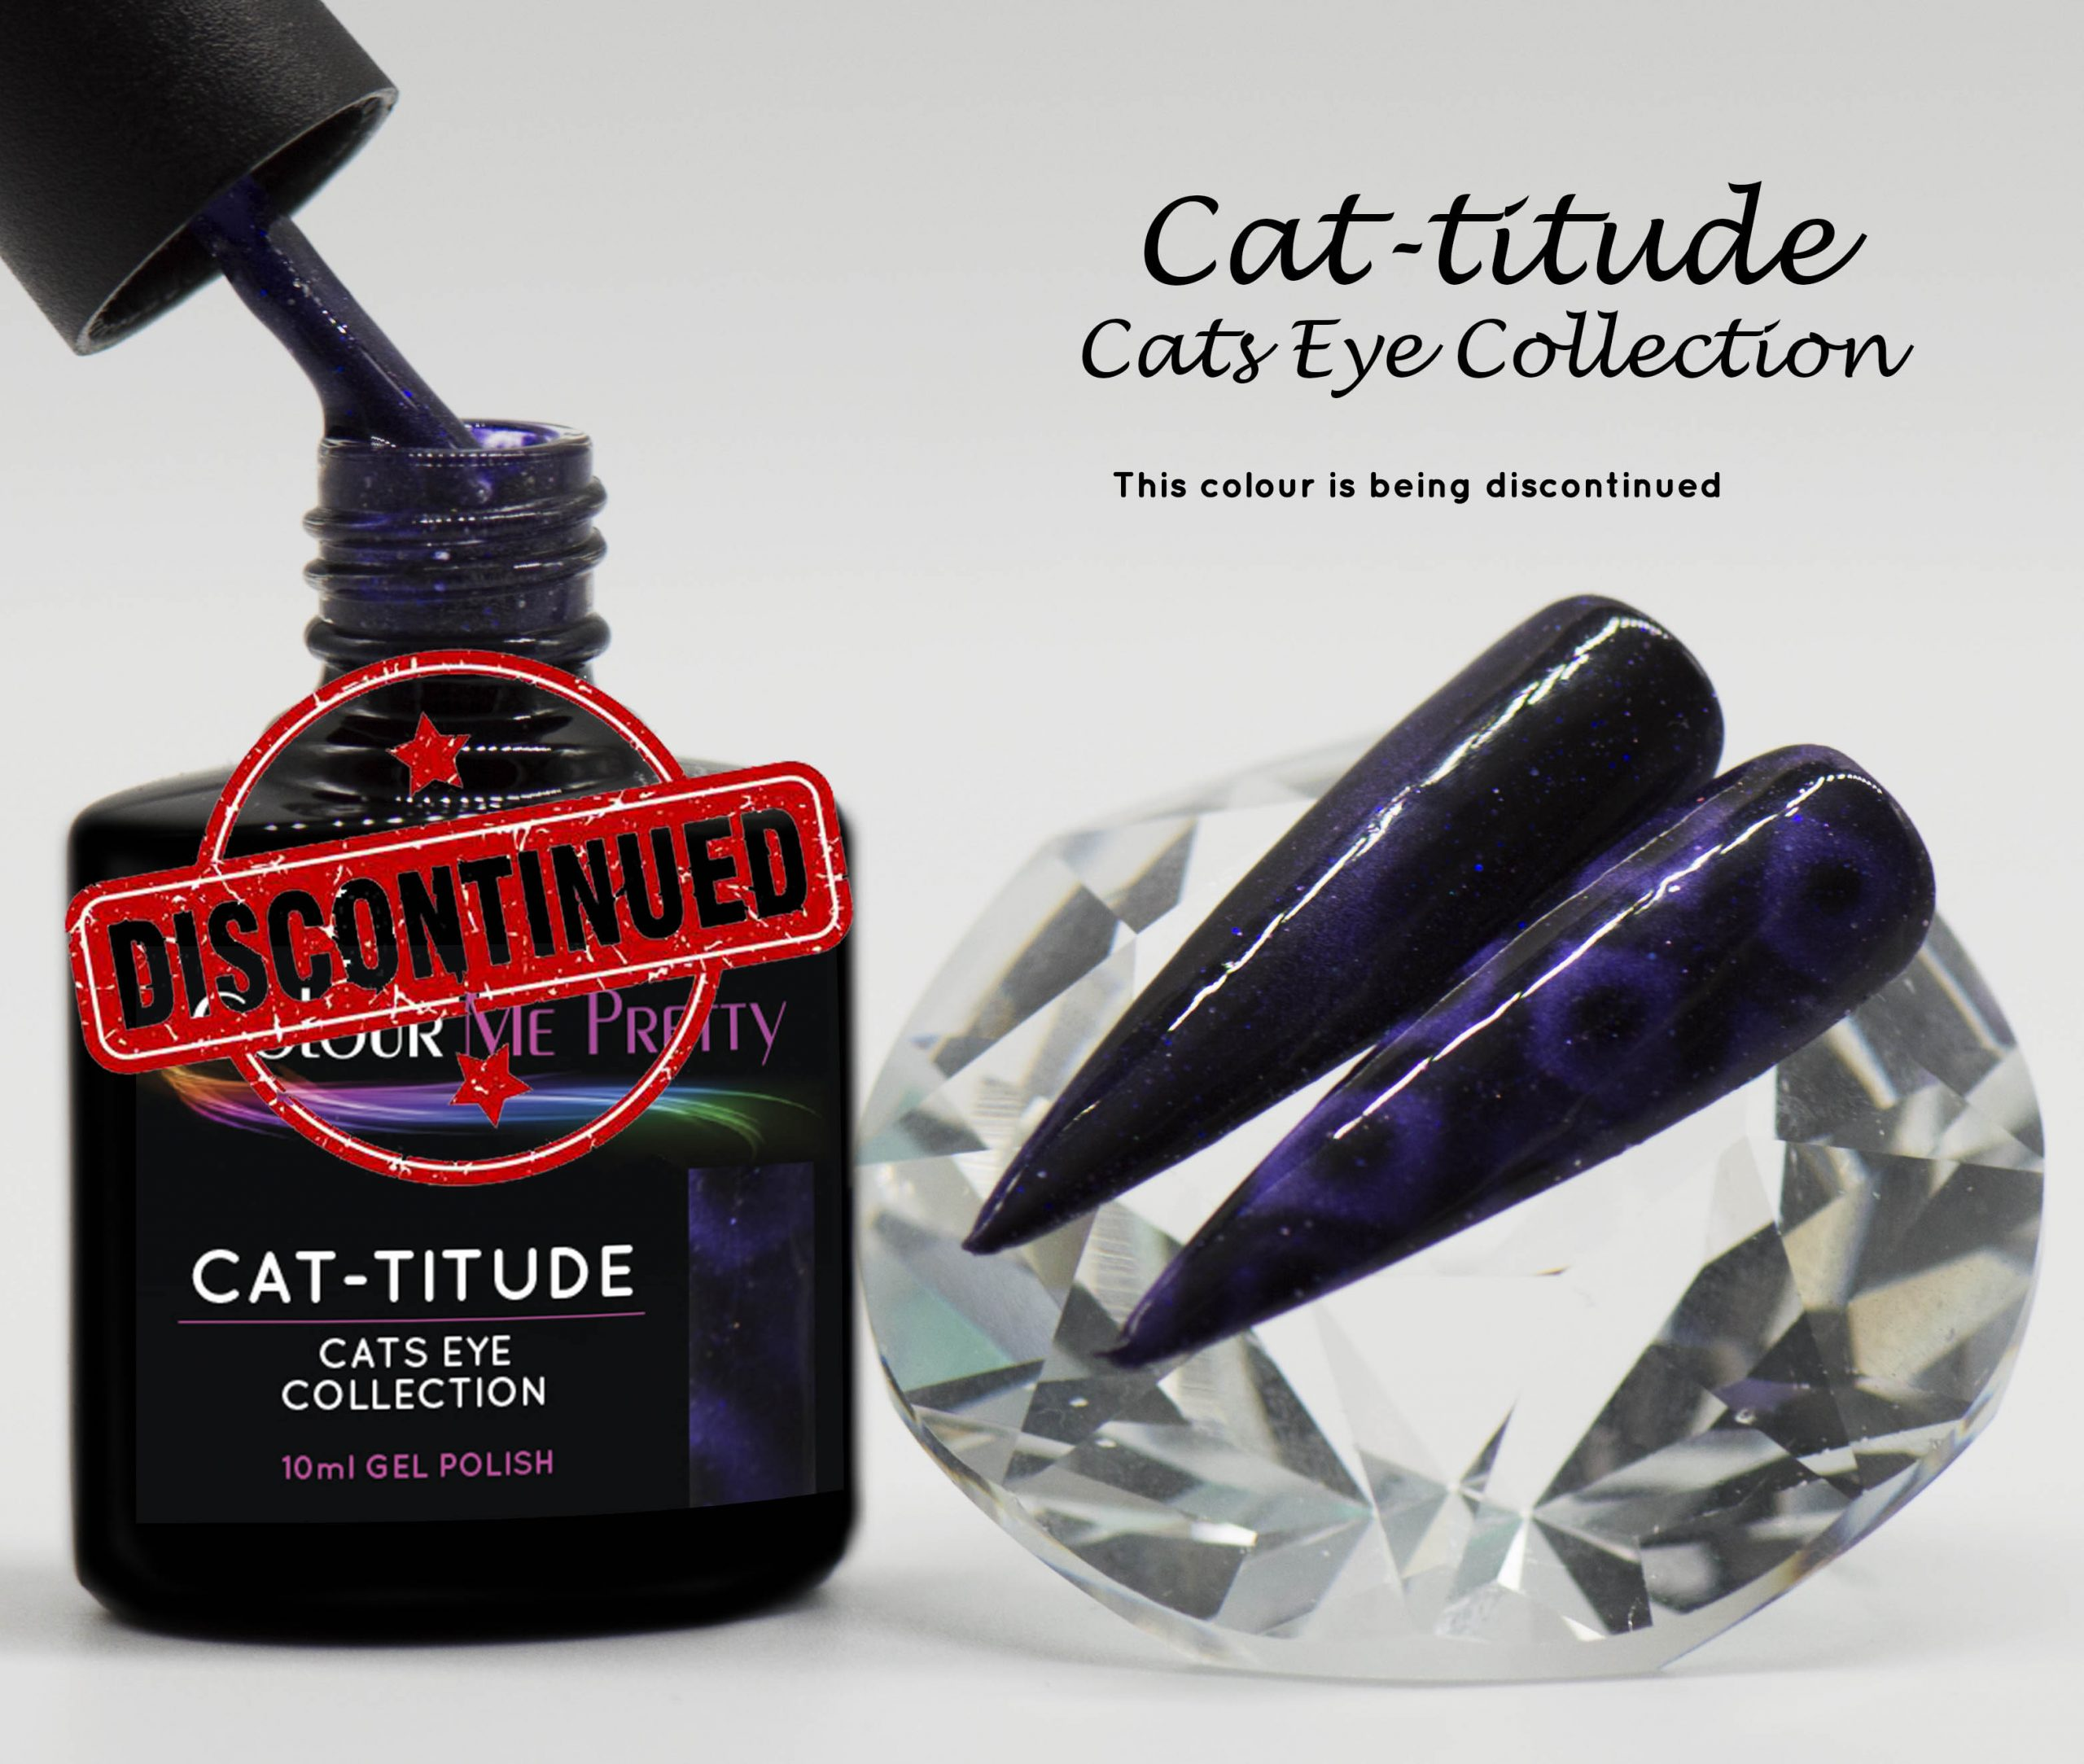 Cats Eye Cat-titude Discontinued